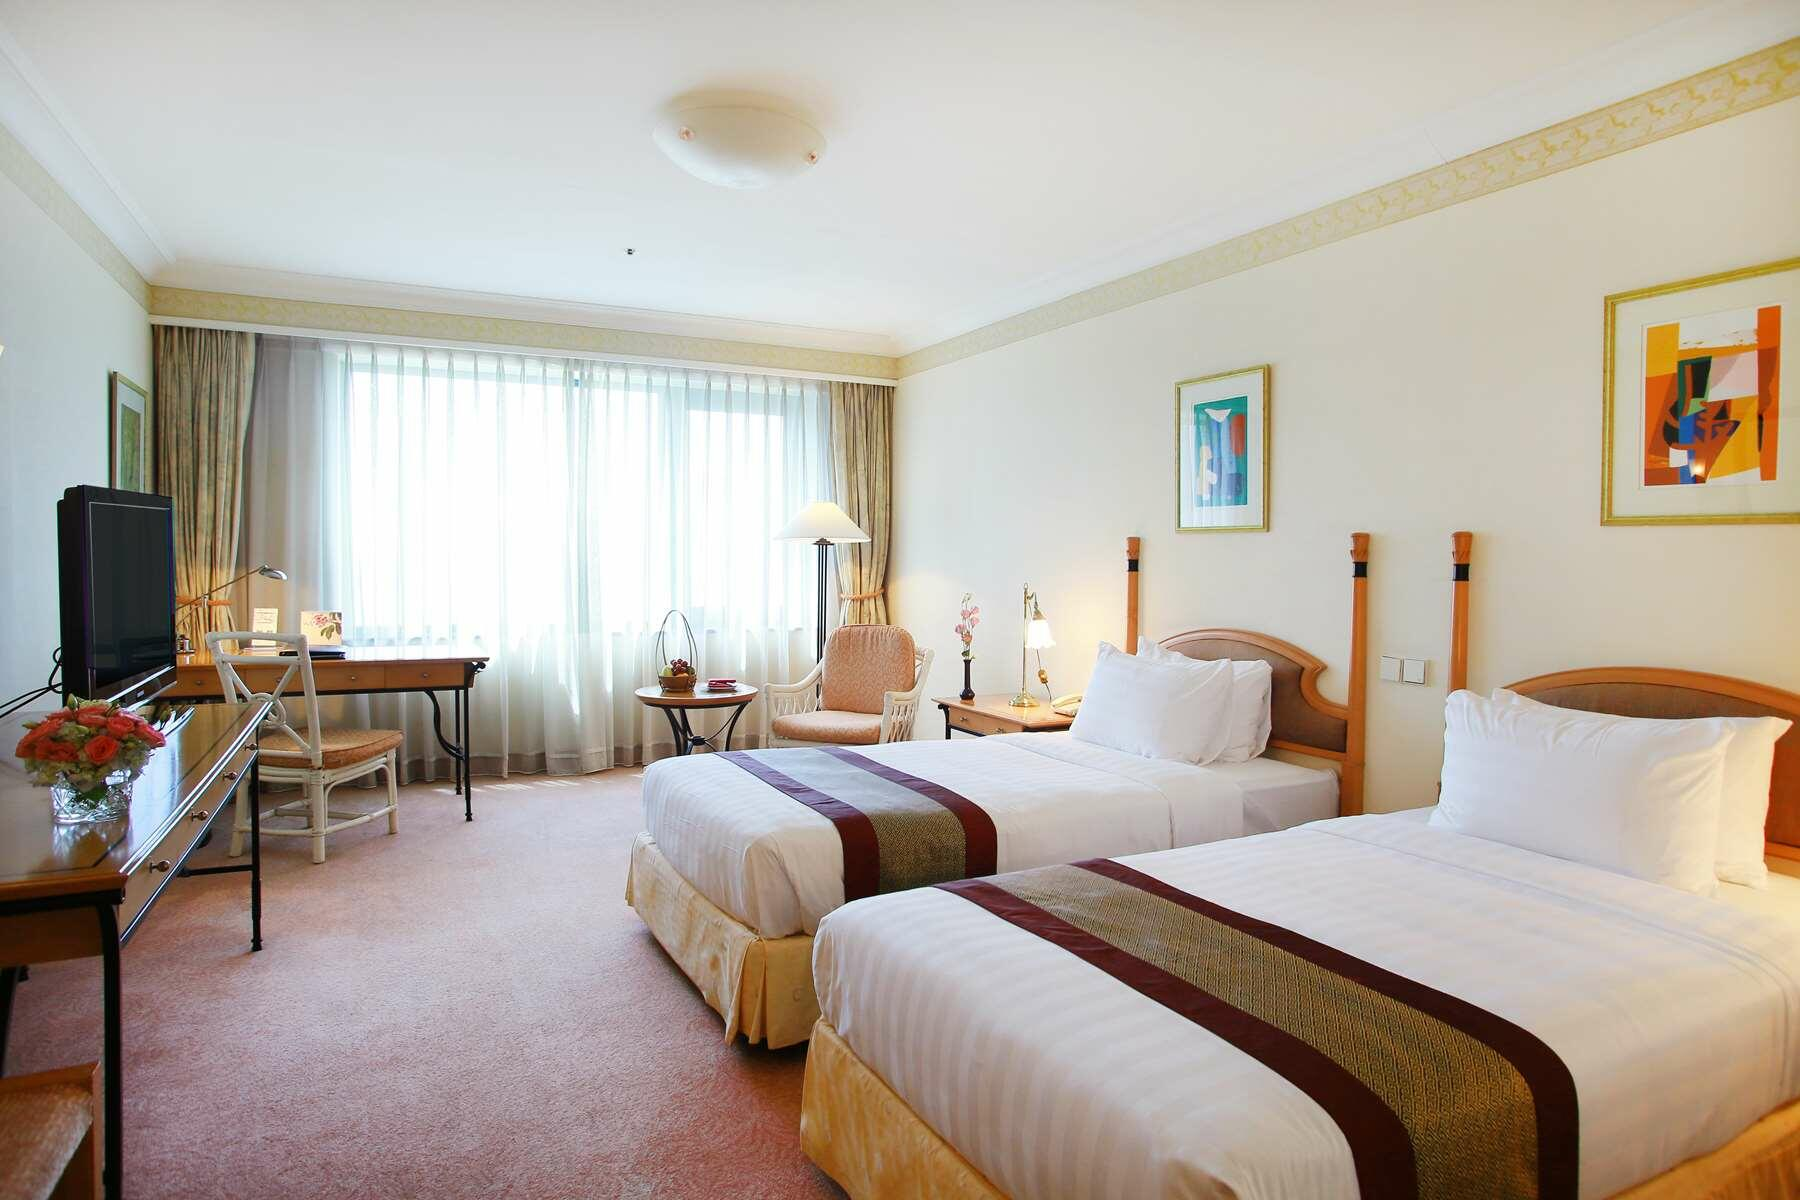 Grand Deluxe Room   Best Place to Stay in Hanoi   5 Star Hotels